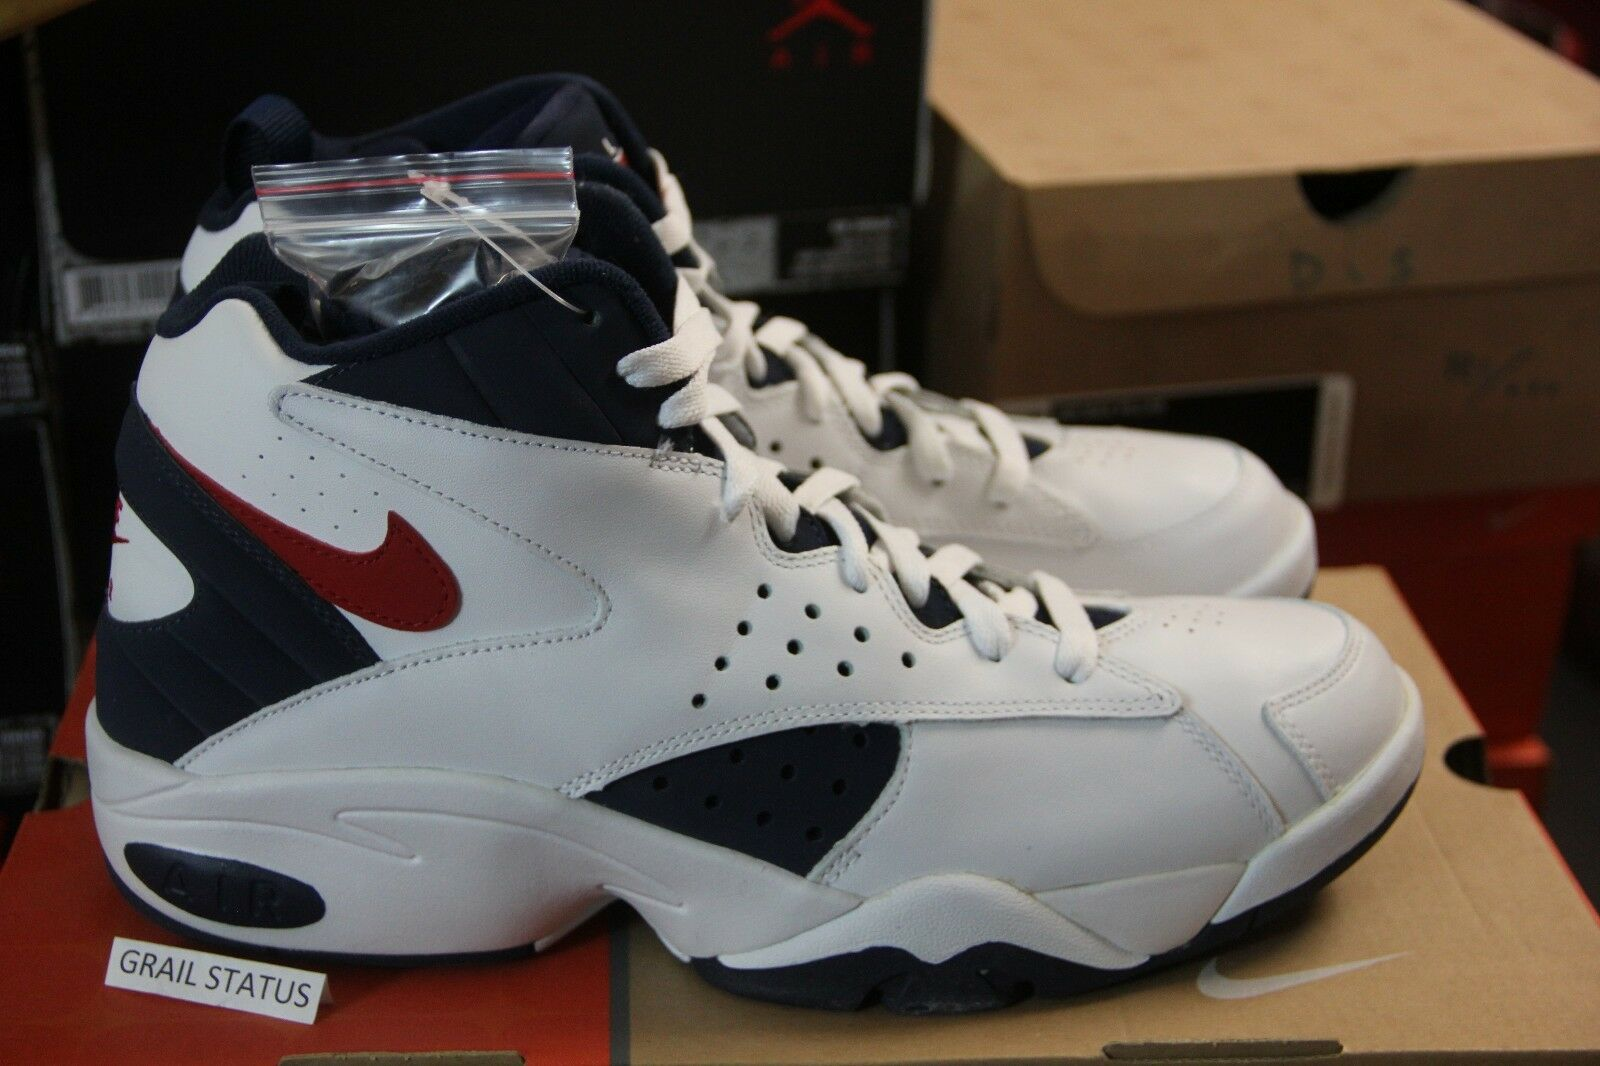 NEW 2004 Nike Air Maestro Pippen Olympic USA KITH 310269-161 men size 9-12